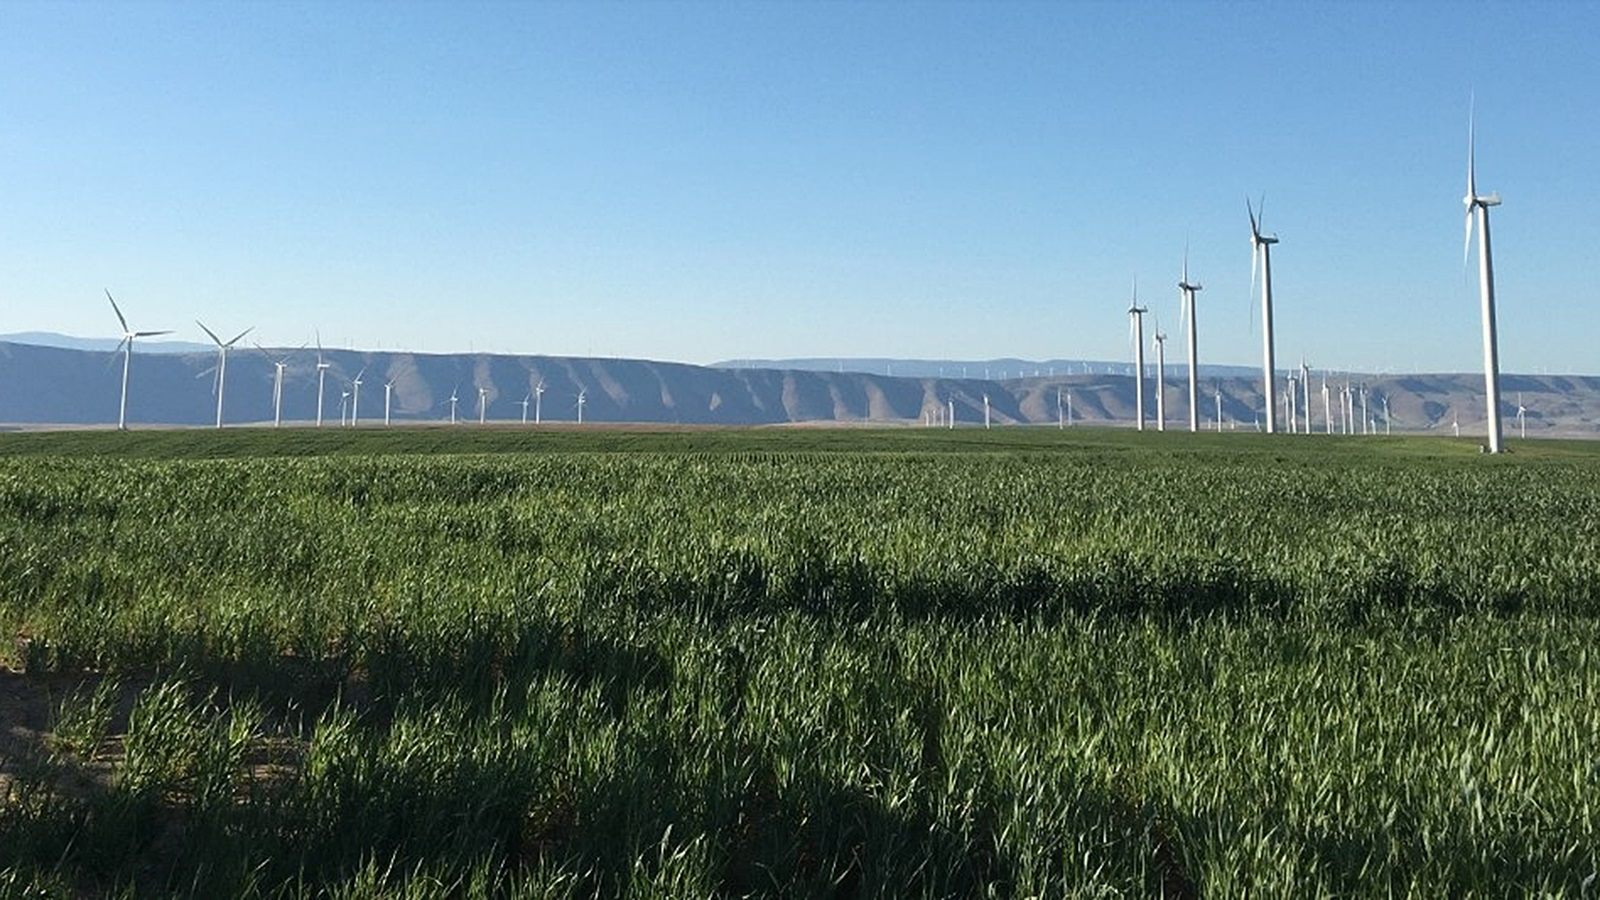 Wind turbines along the Columbia River Gorge. (Image by Paytsar Muradyan / Argonne National Laboratory.)